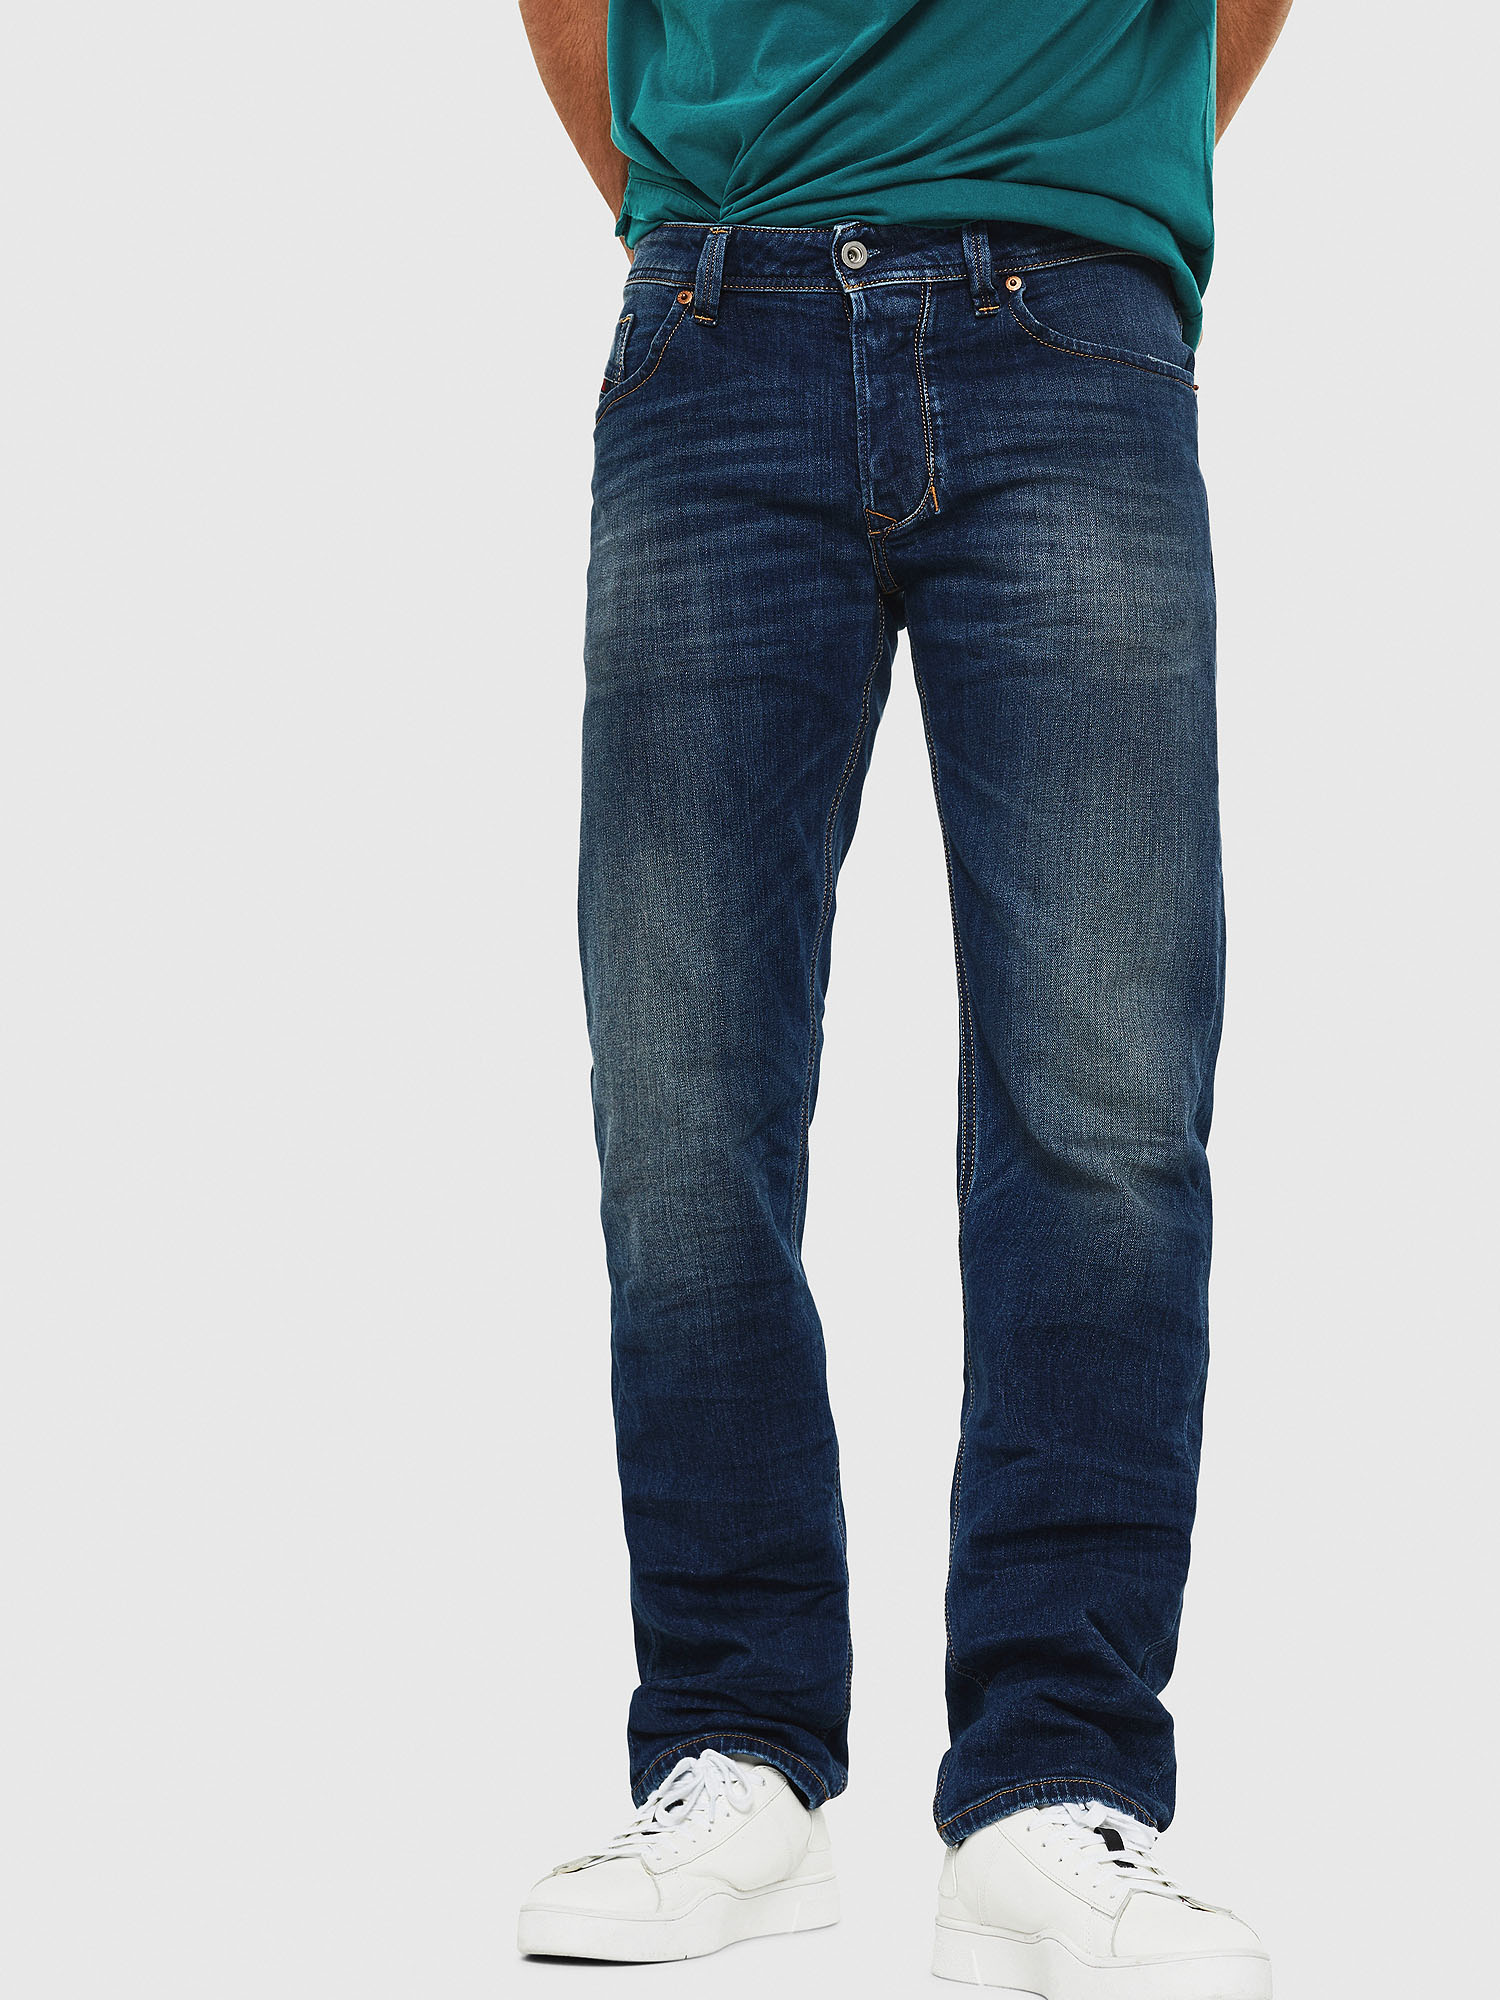 Diesel - Larkee 087AW,  - Jeans - Image 1